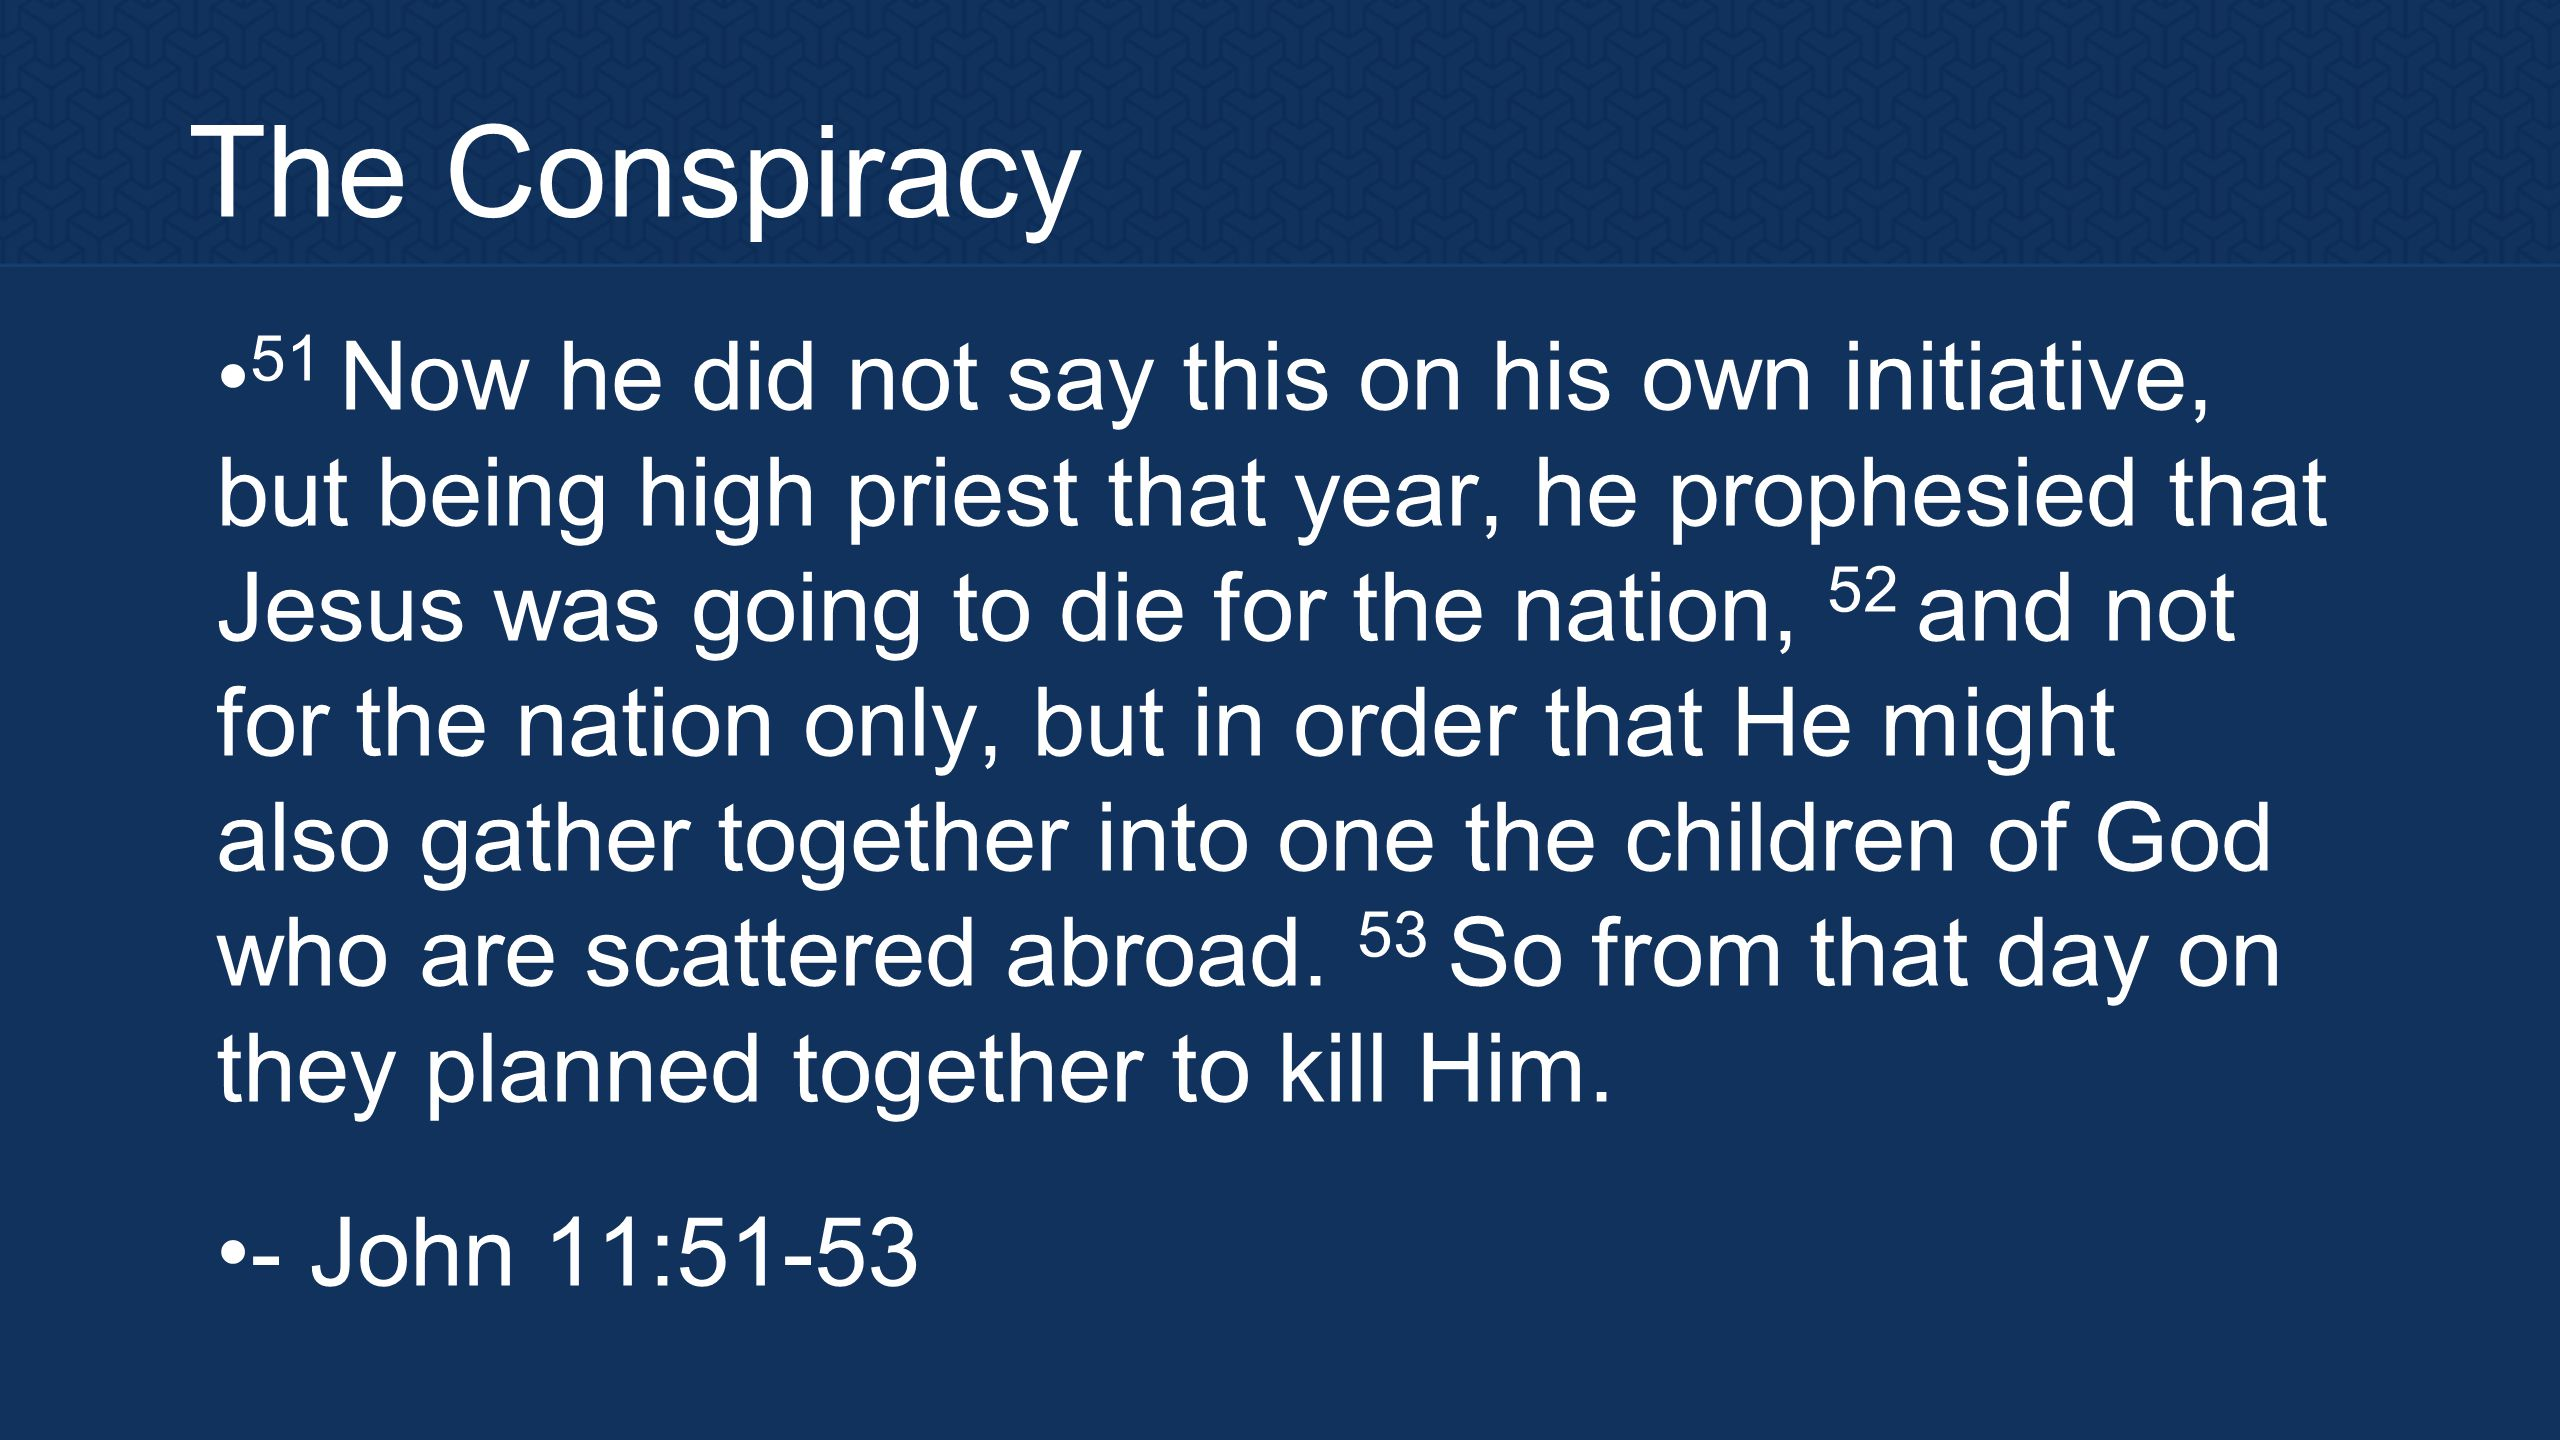 The Conspiracy 51 Now he did not say this on his own initiative, but being high priest that year, he prophesied that Jesus was going to die for the nation, 52 and not for the nation only, but in order that He might also gather together into one the children of God who are scattered abroad.